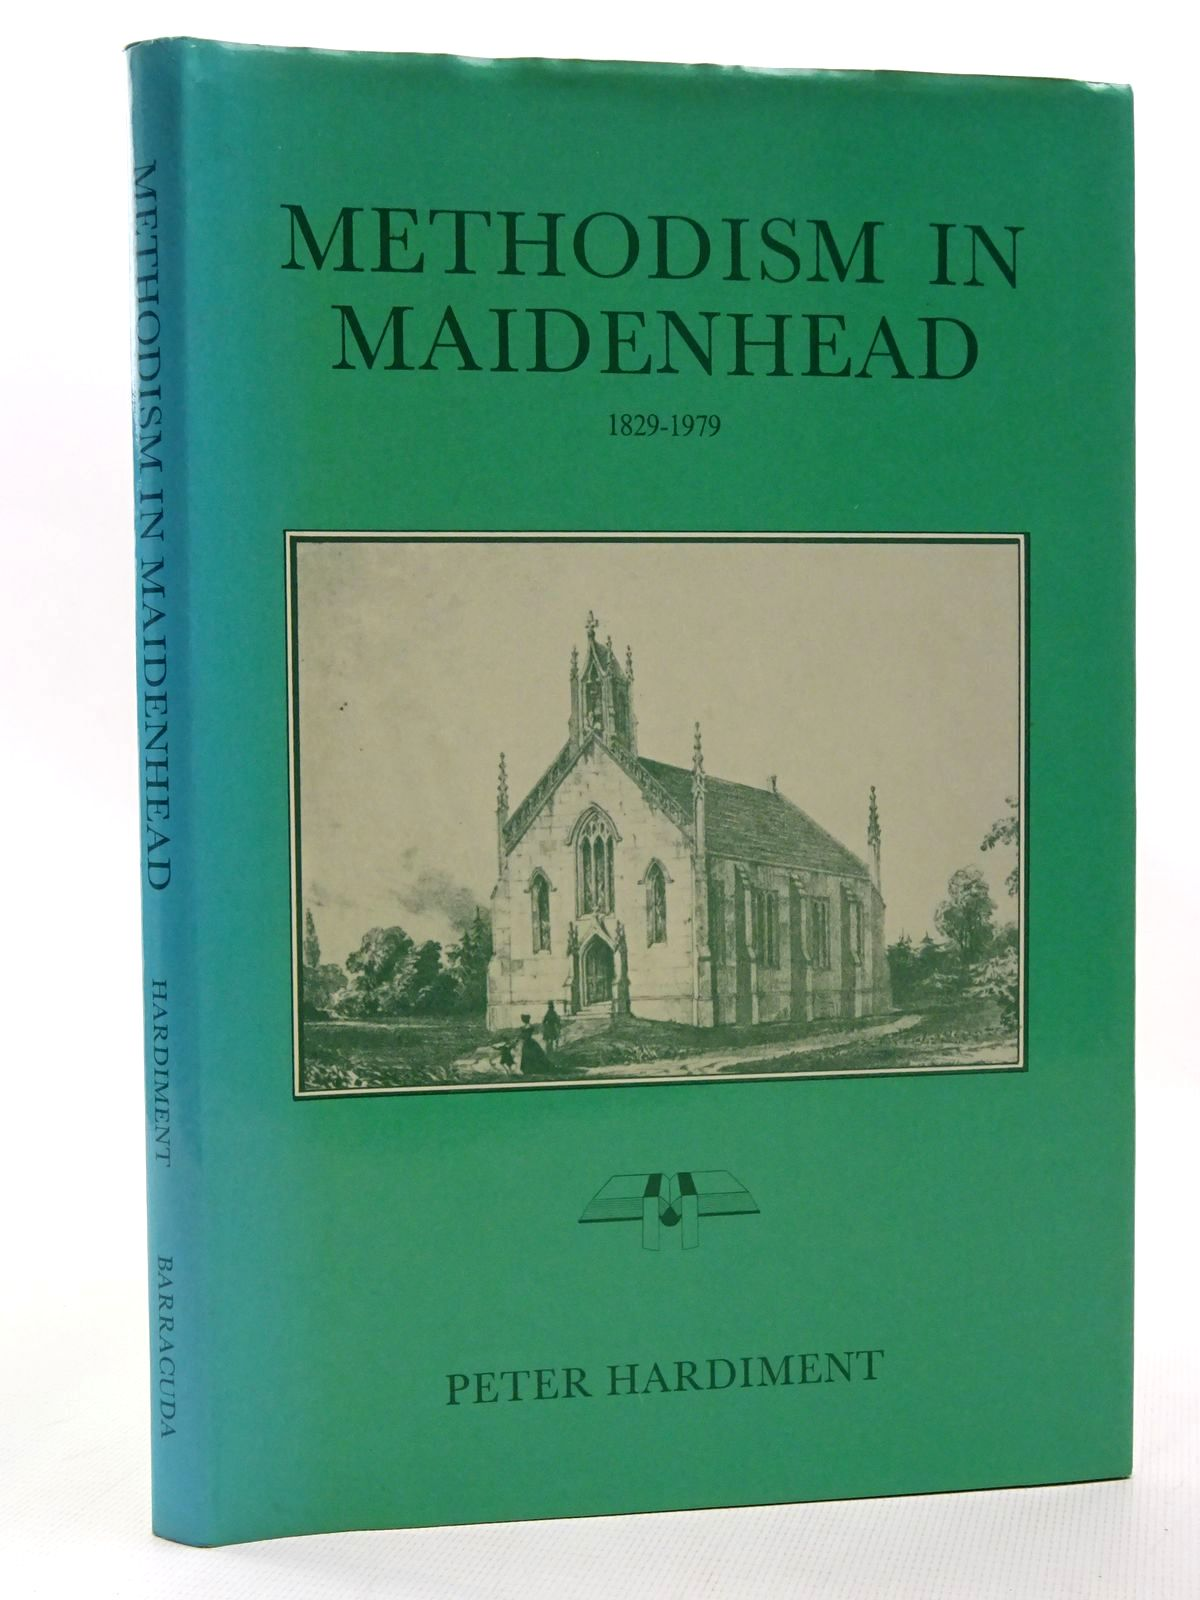 Photo of METHODISM IN MAIDENHEAD 1829-1979 written by Hardiment, Peter published by Barracuda Books (STOCK CODE: 2124205)  for sale by Stella & Rose's Books